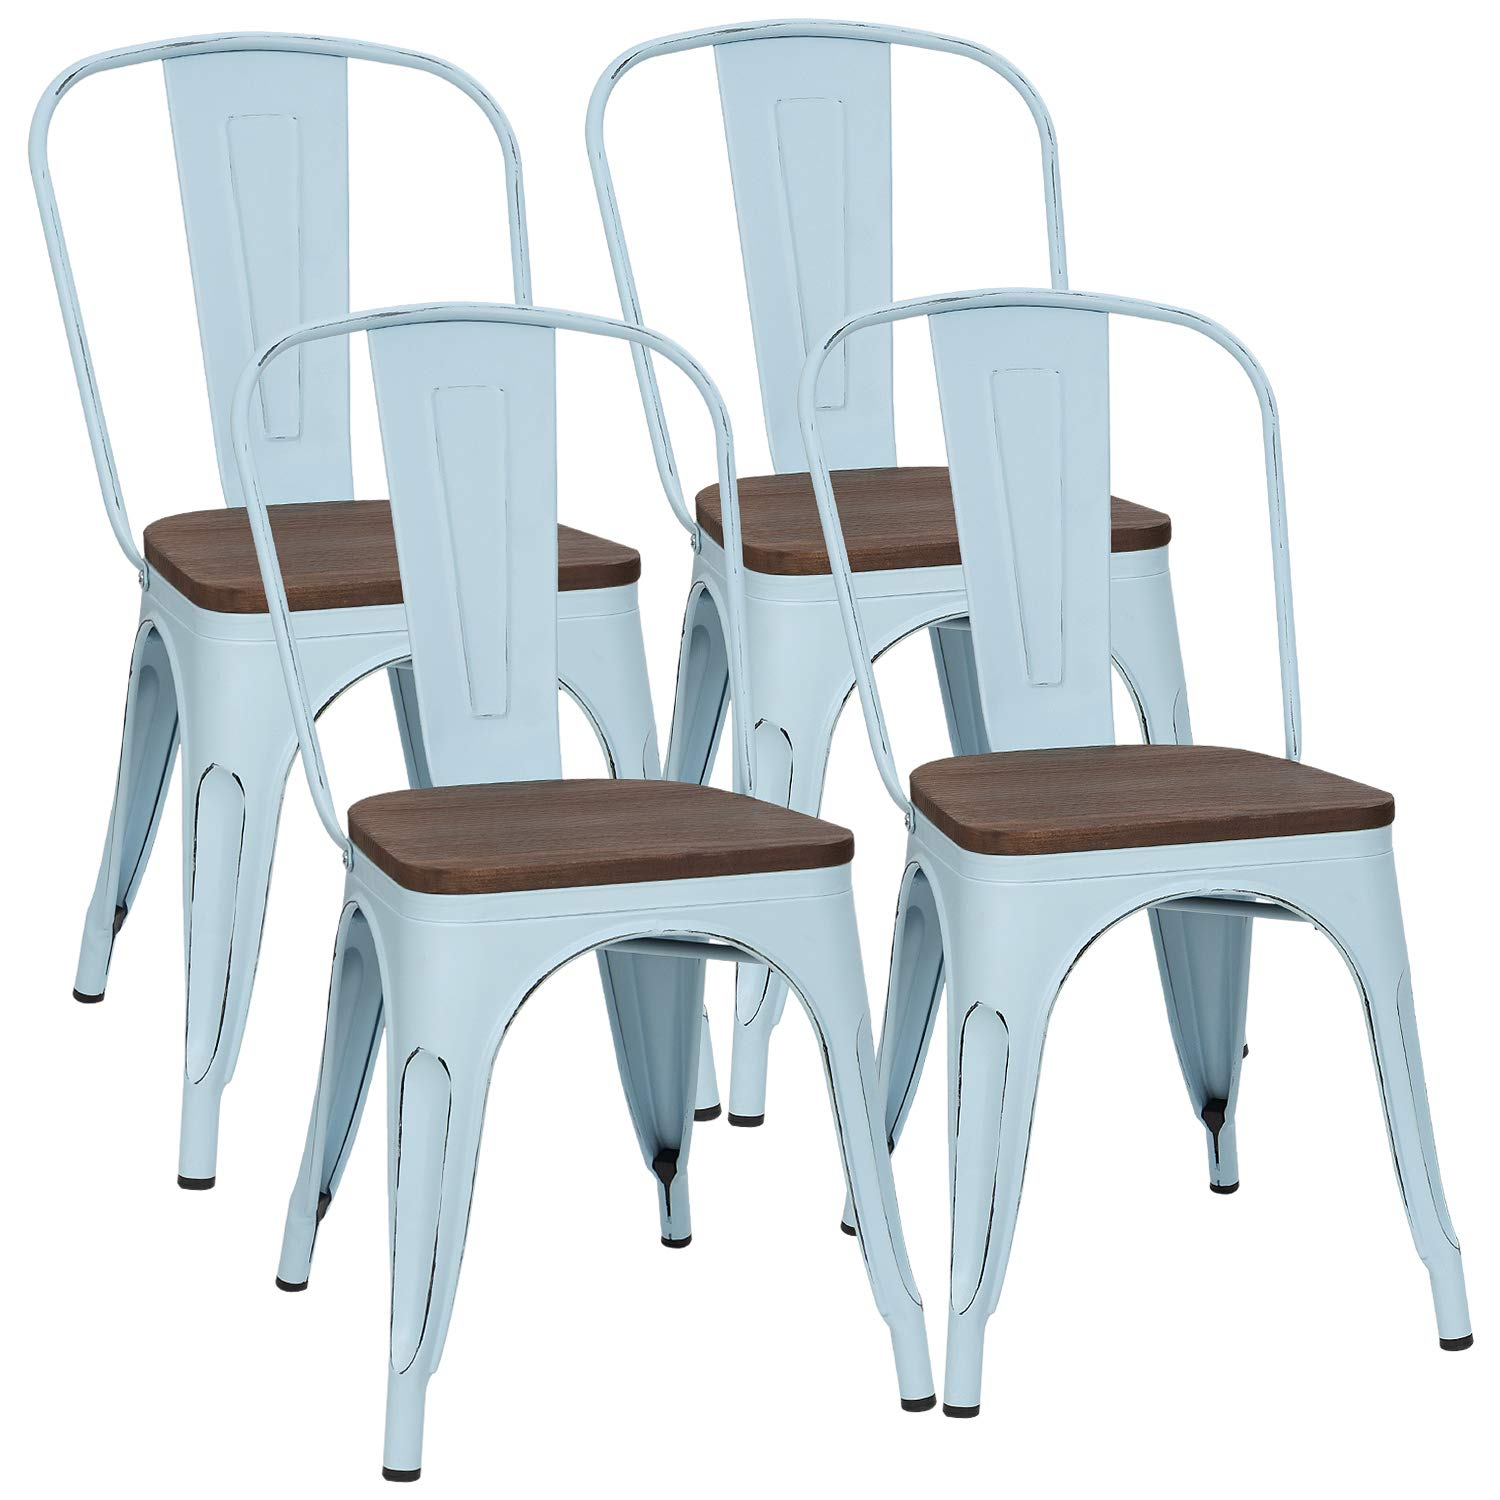 Furmax Metal Dining Chair with Wood Seat,Indoor-Outdoor Use Stackable Chic Dining Bistro Cafe Side Metal Chairs (Set of 4) (Blue Distressed)